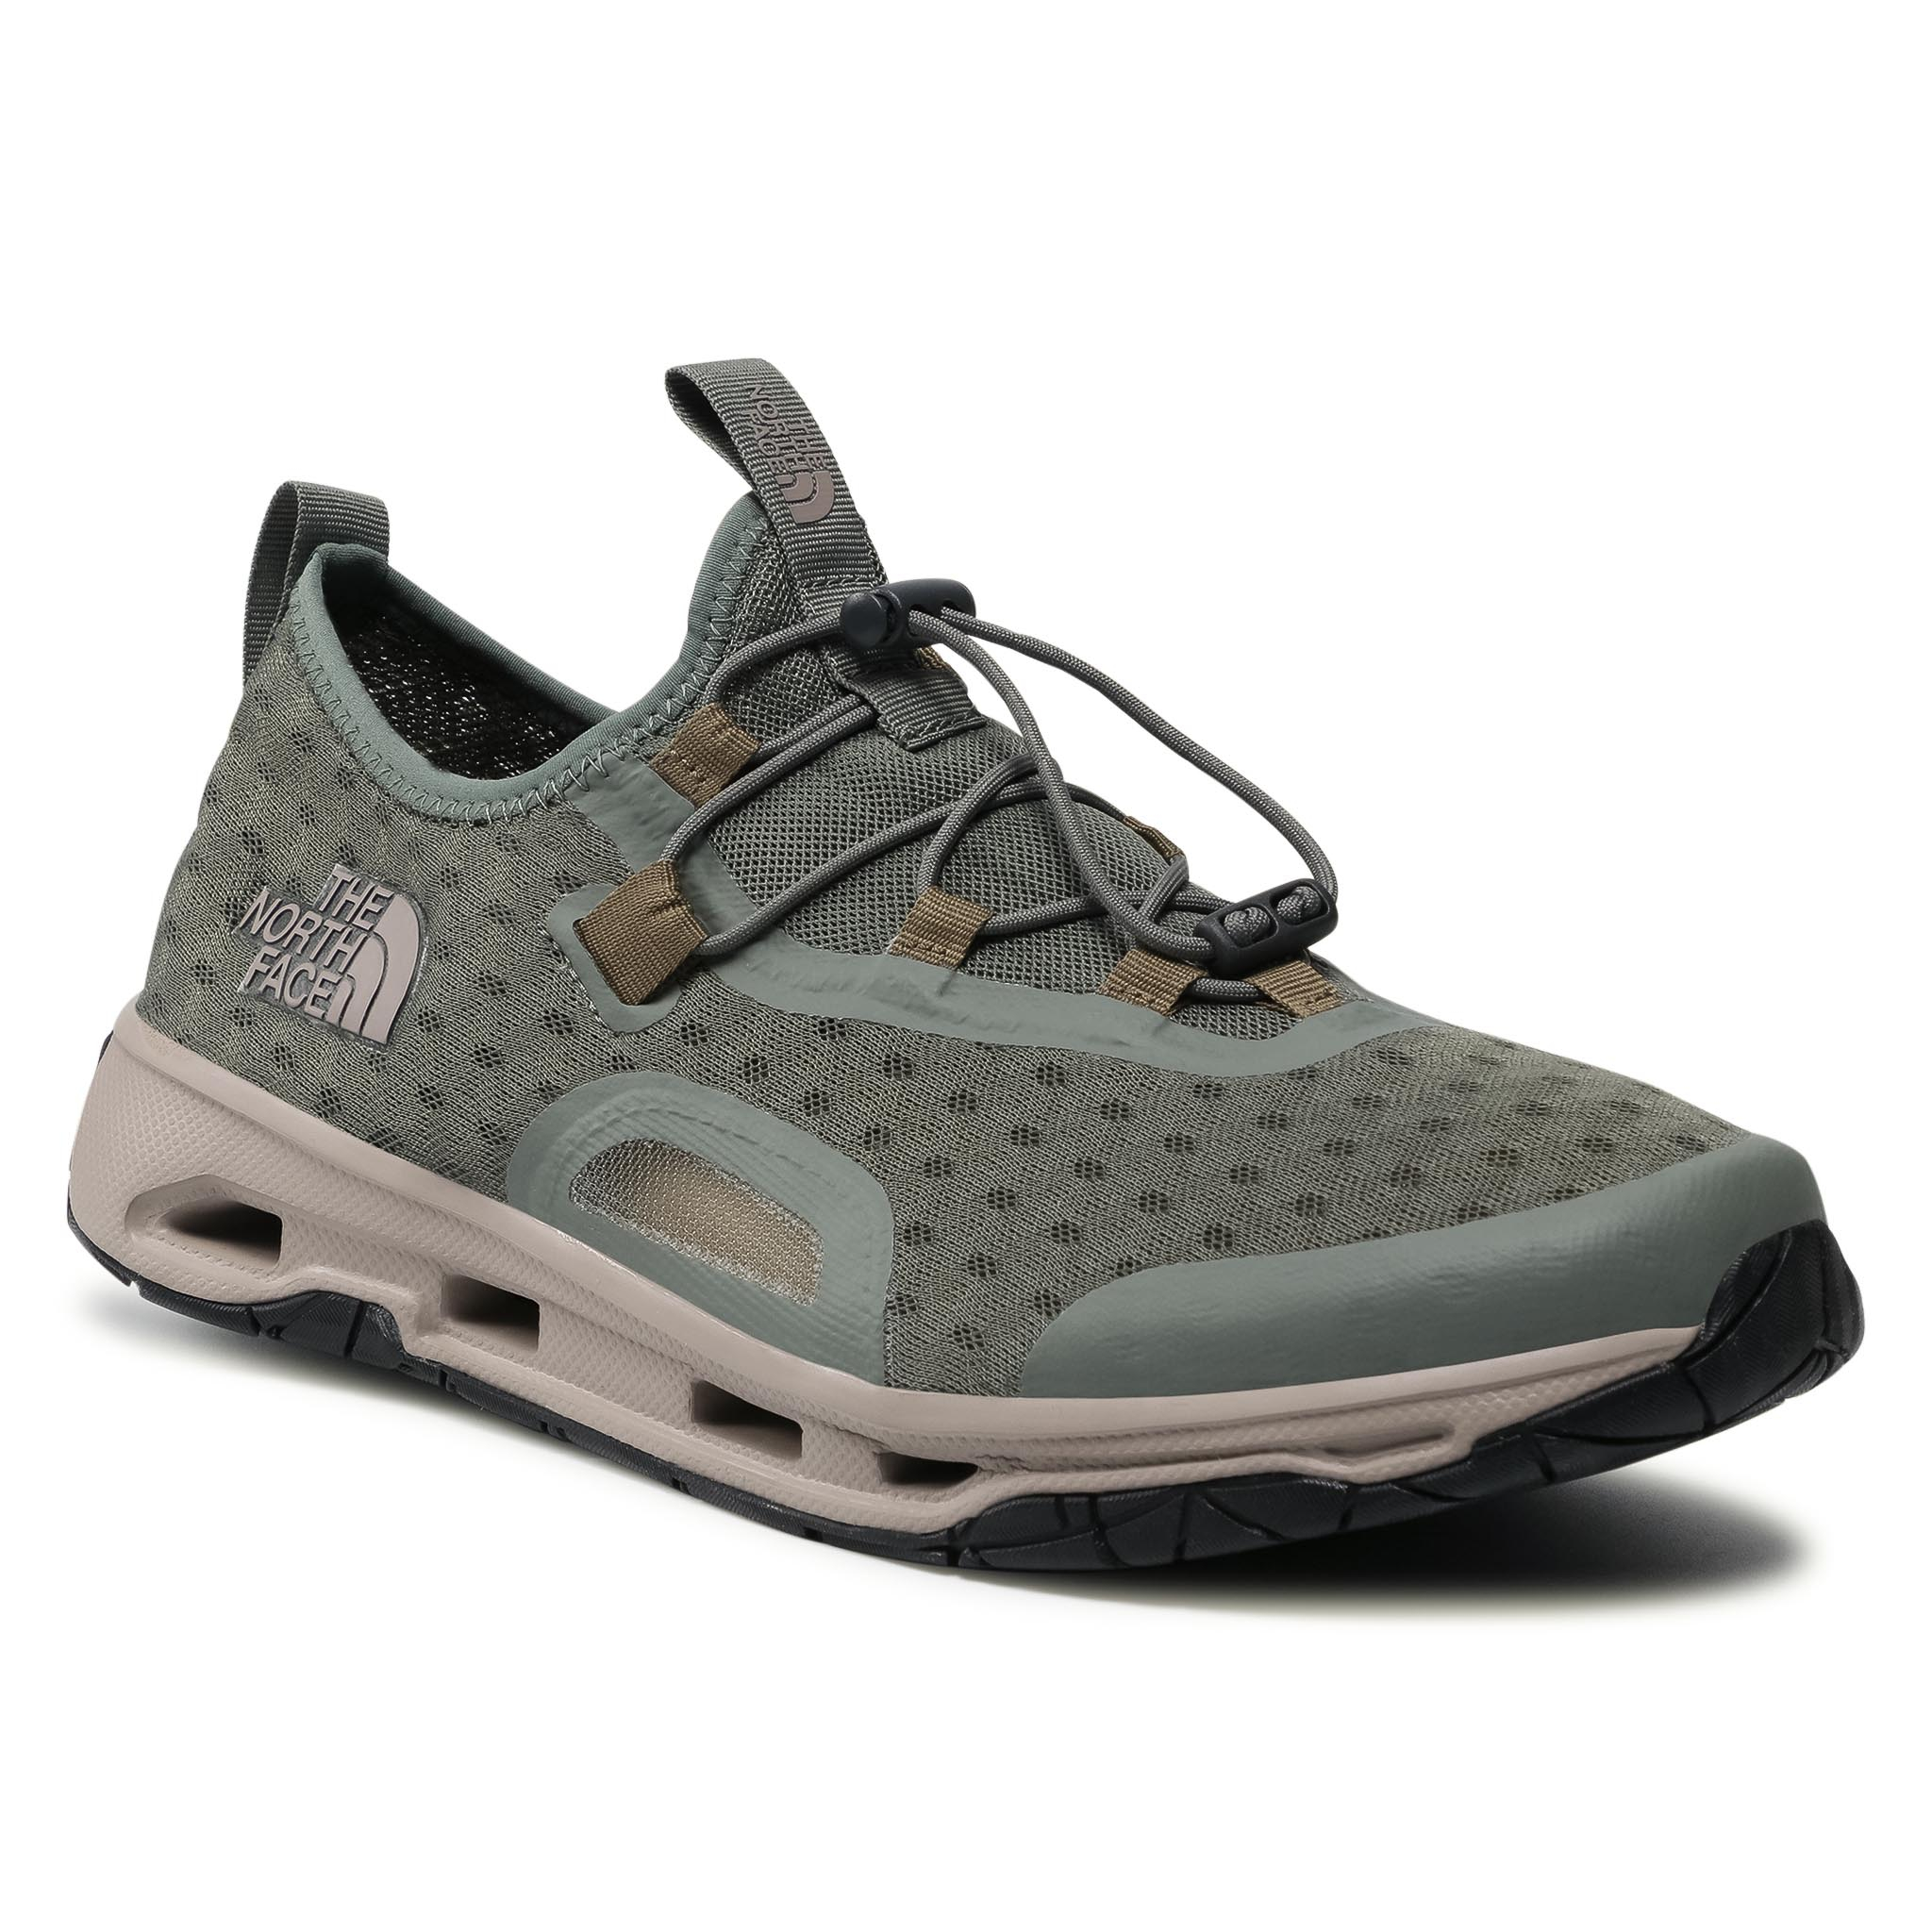 Batai THE NORTH FACE - Skagit Water Shoe NF0A48MAZH21 Agave Green/Military Olive